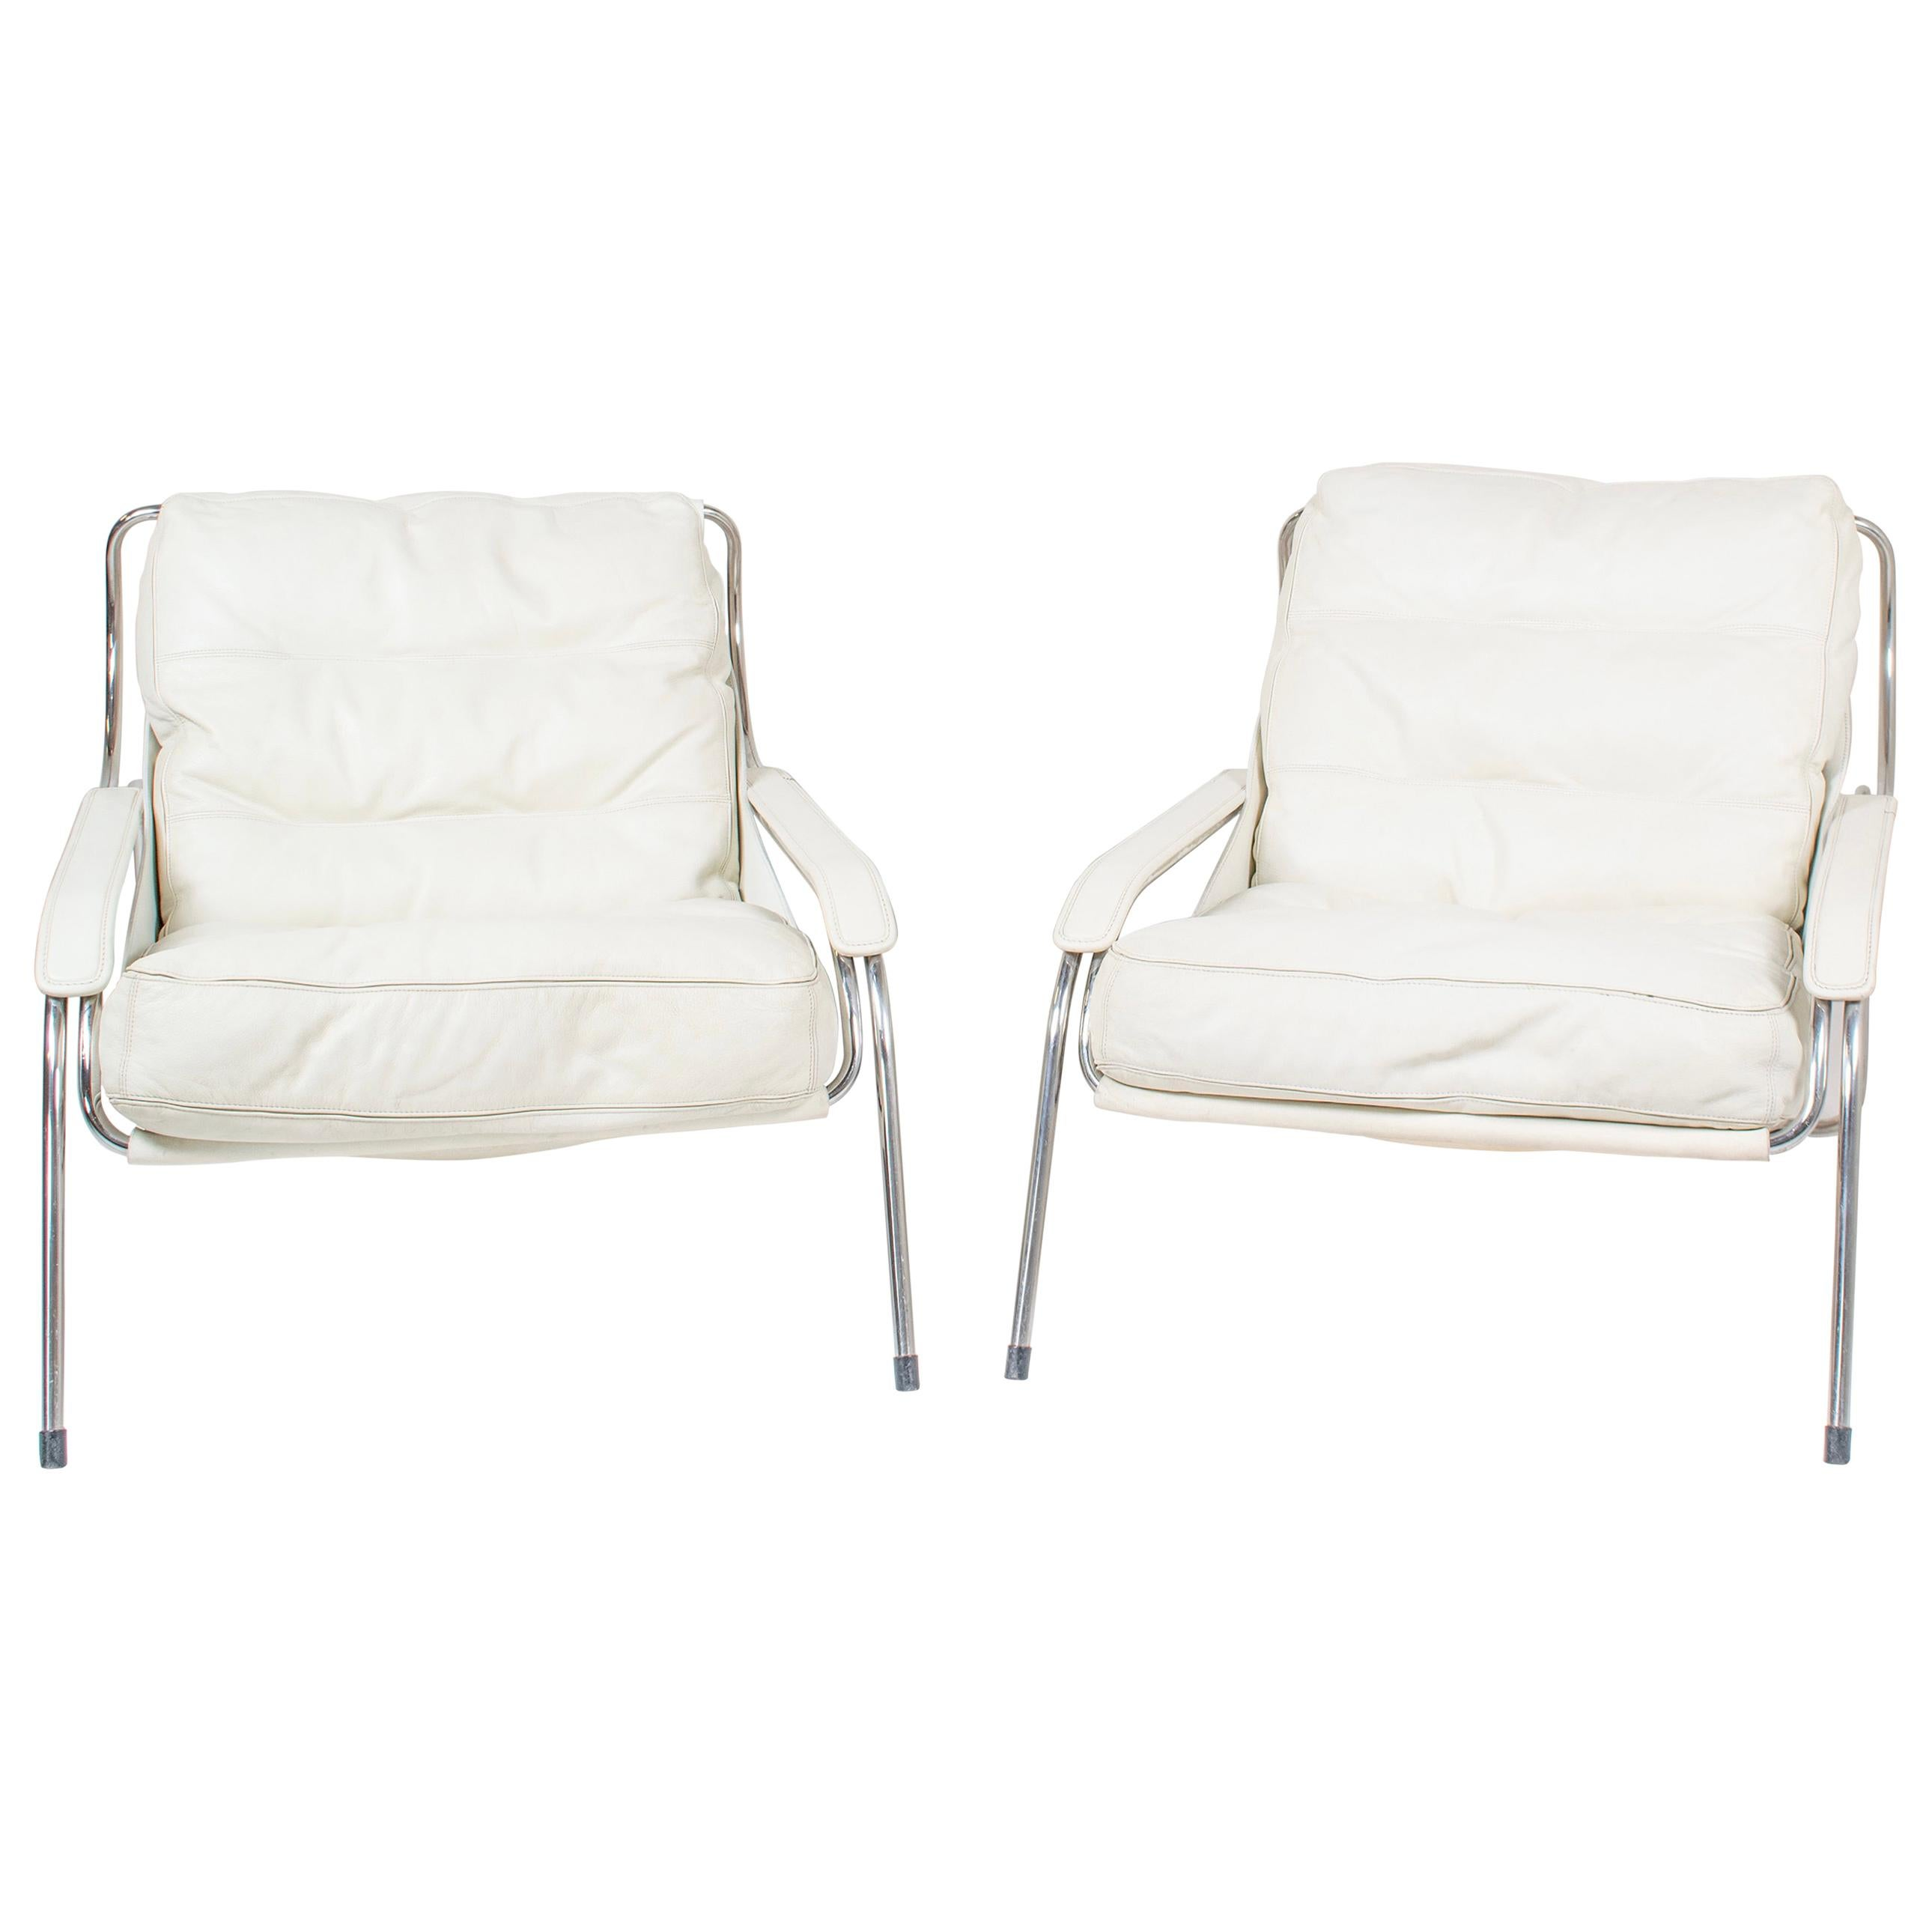 Pair of Marco Zanuso Maggiolina White Leather Chairs by Zanotta, Italy, 1947